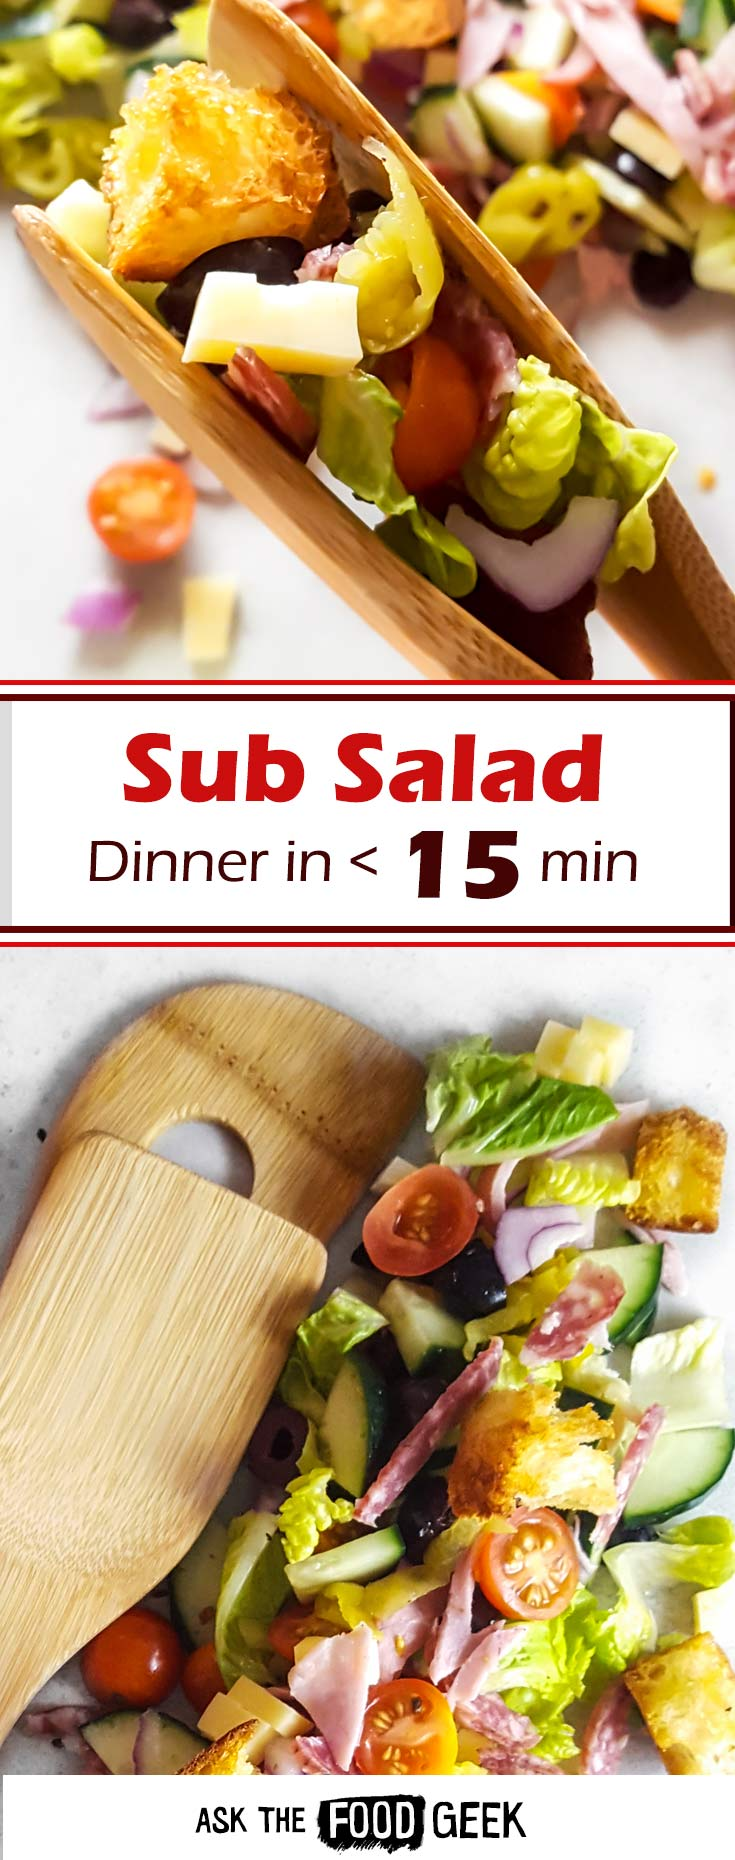 Healthy Italian sub salad recipe - perfect for dinner on busy weeknights. Travels well for lunch on the go. Ready in under 15 minutes.